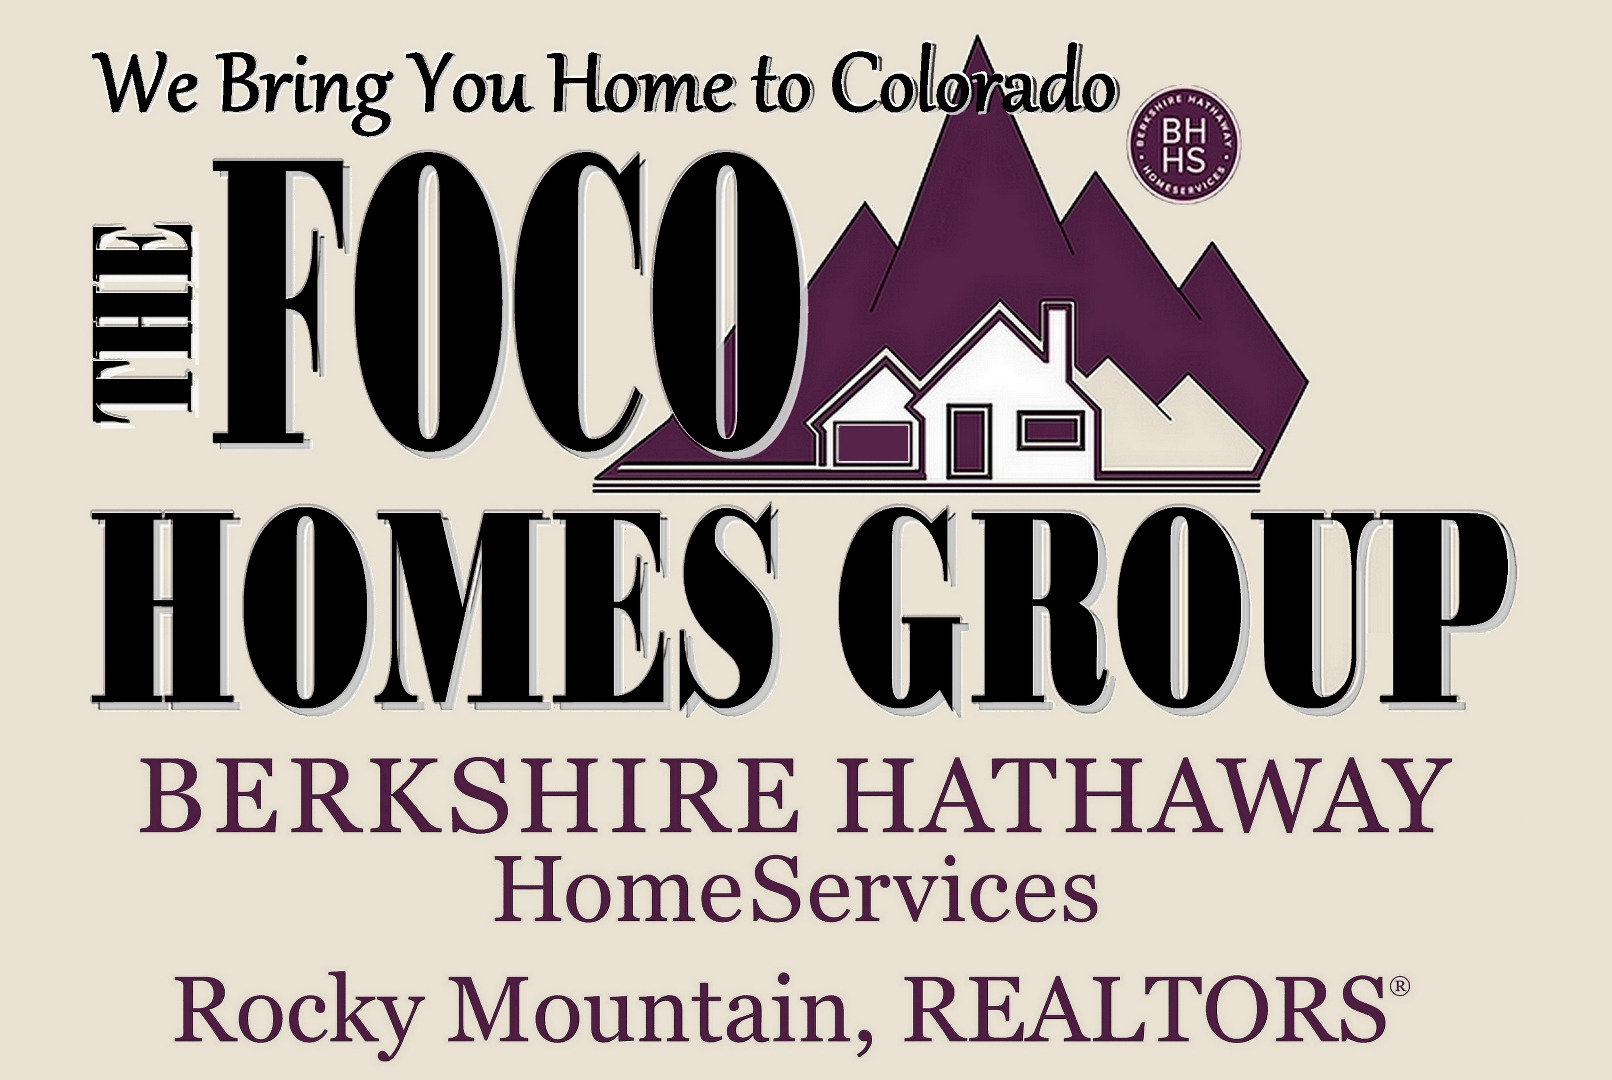 FoCo Homes Group Fort Collins Home Source Marie Edwards1c1.jpg